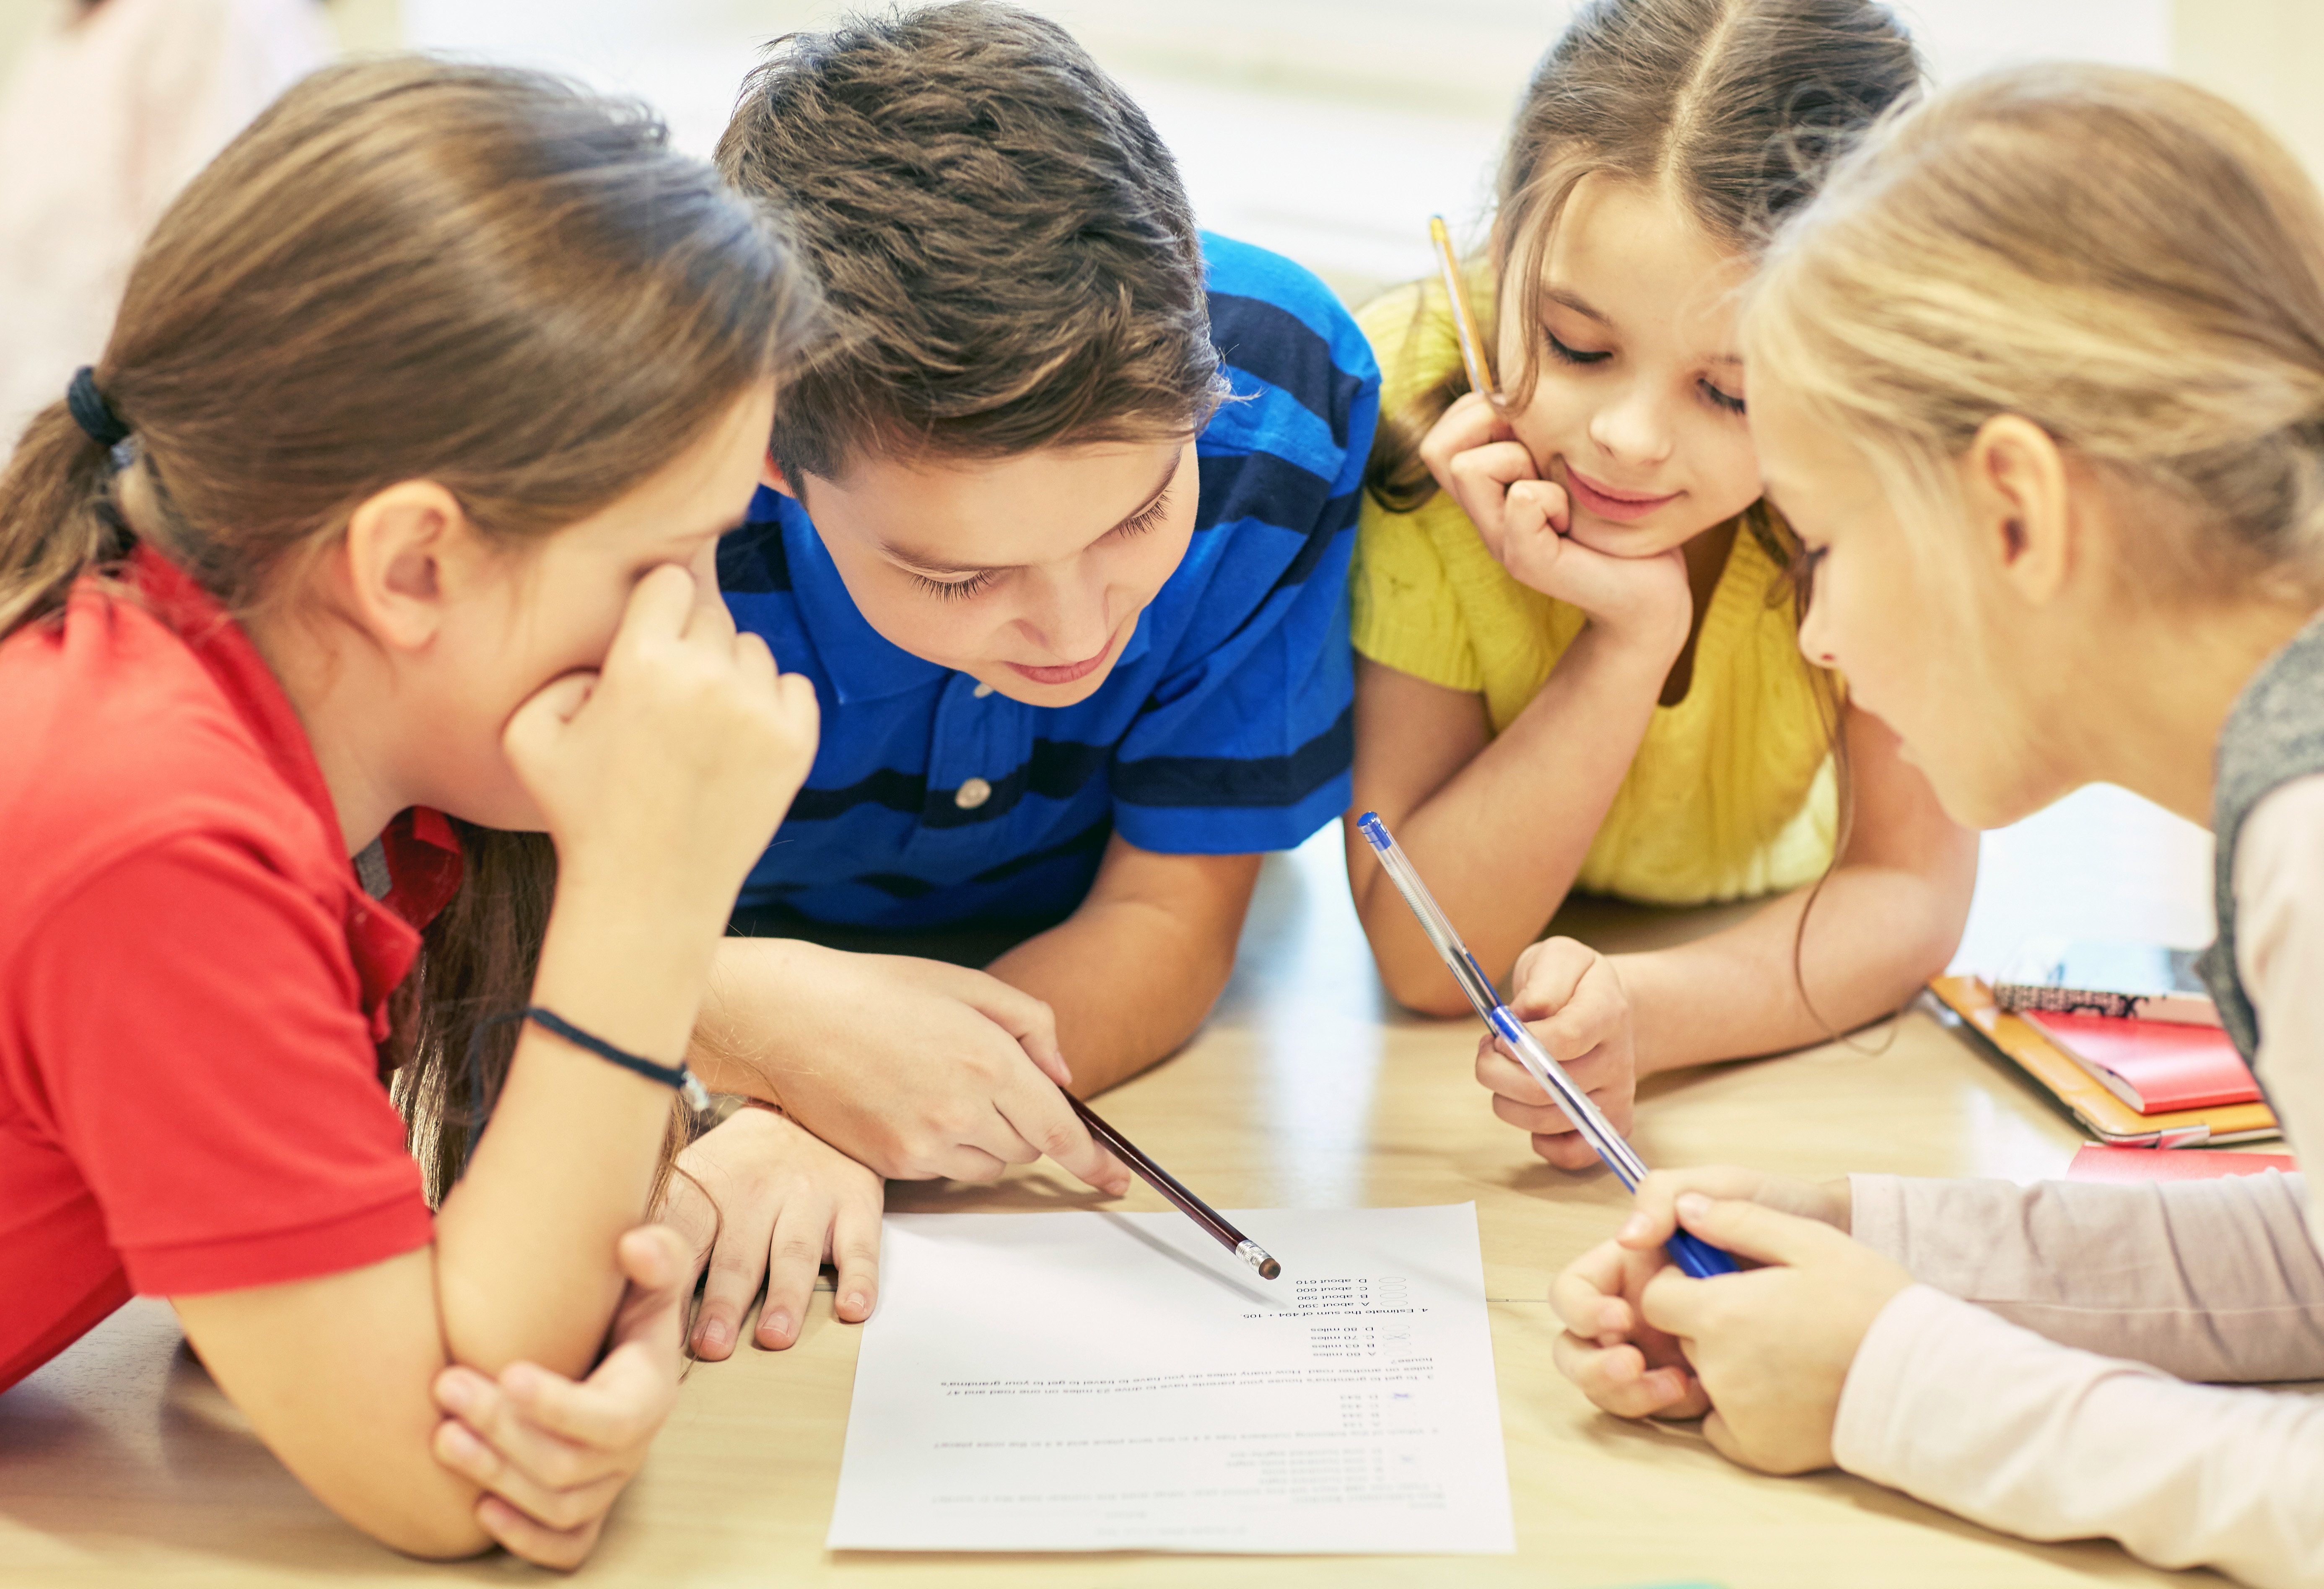 Group of children looking at paper on a desk